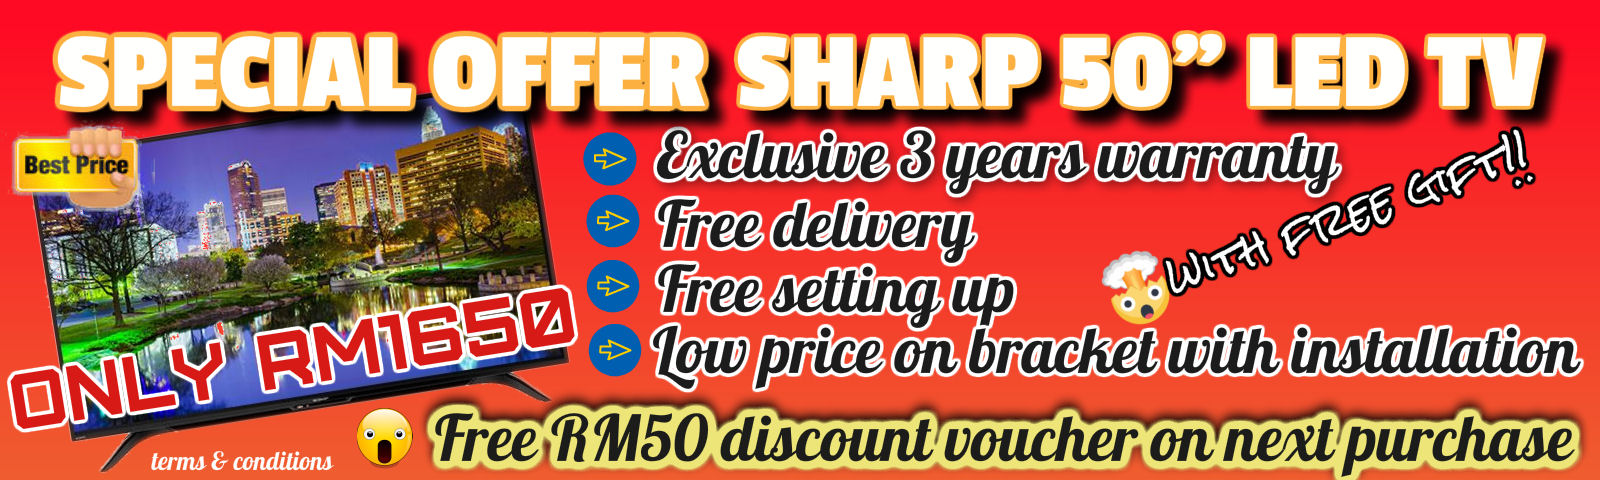 "Sharp 50"" LED TV on offer!!"